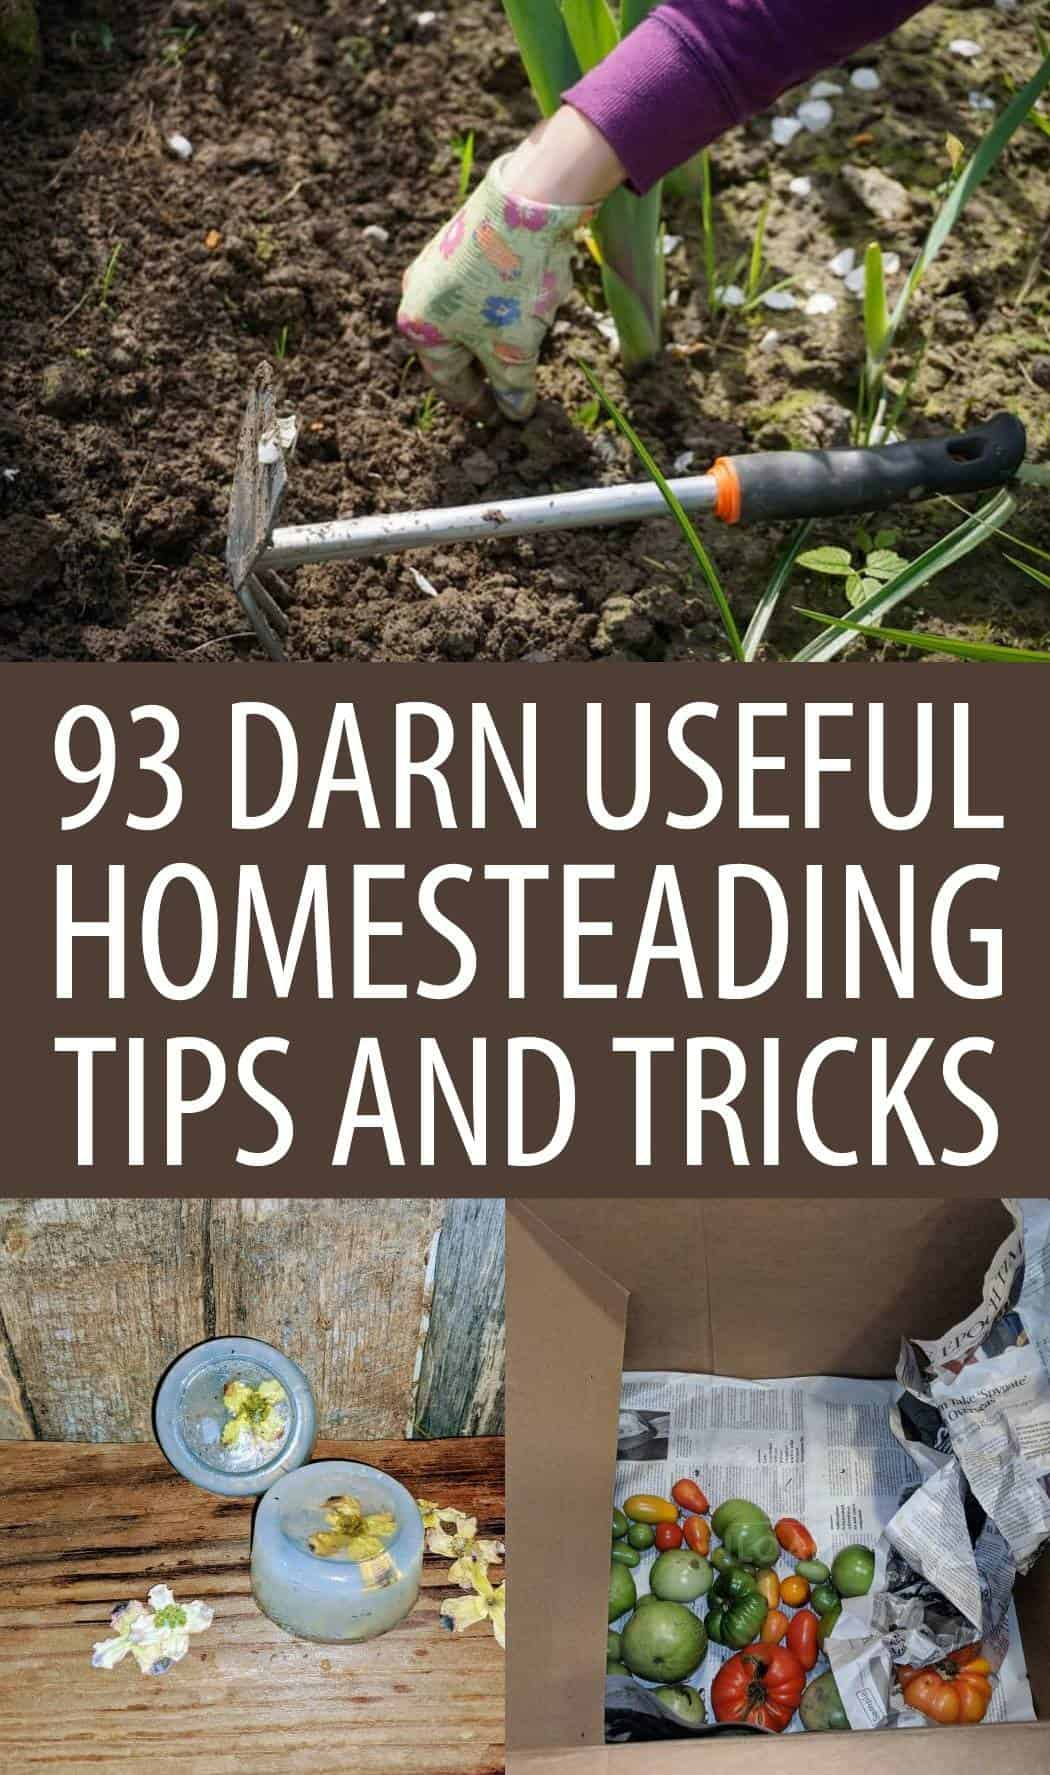 homesteading tips and tricks